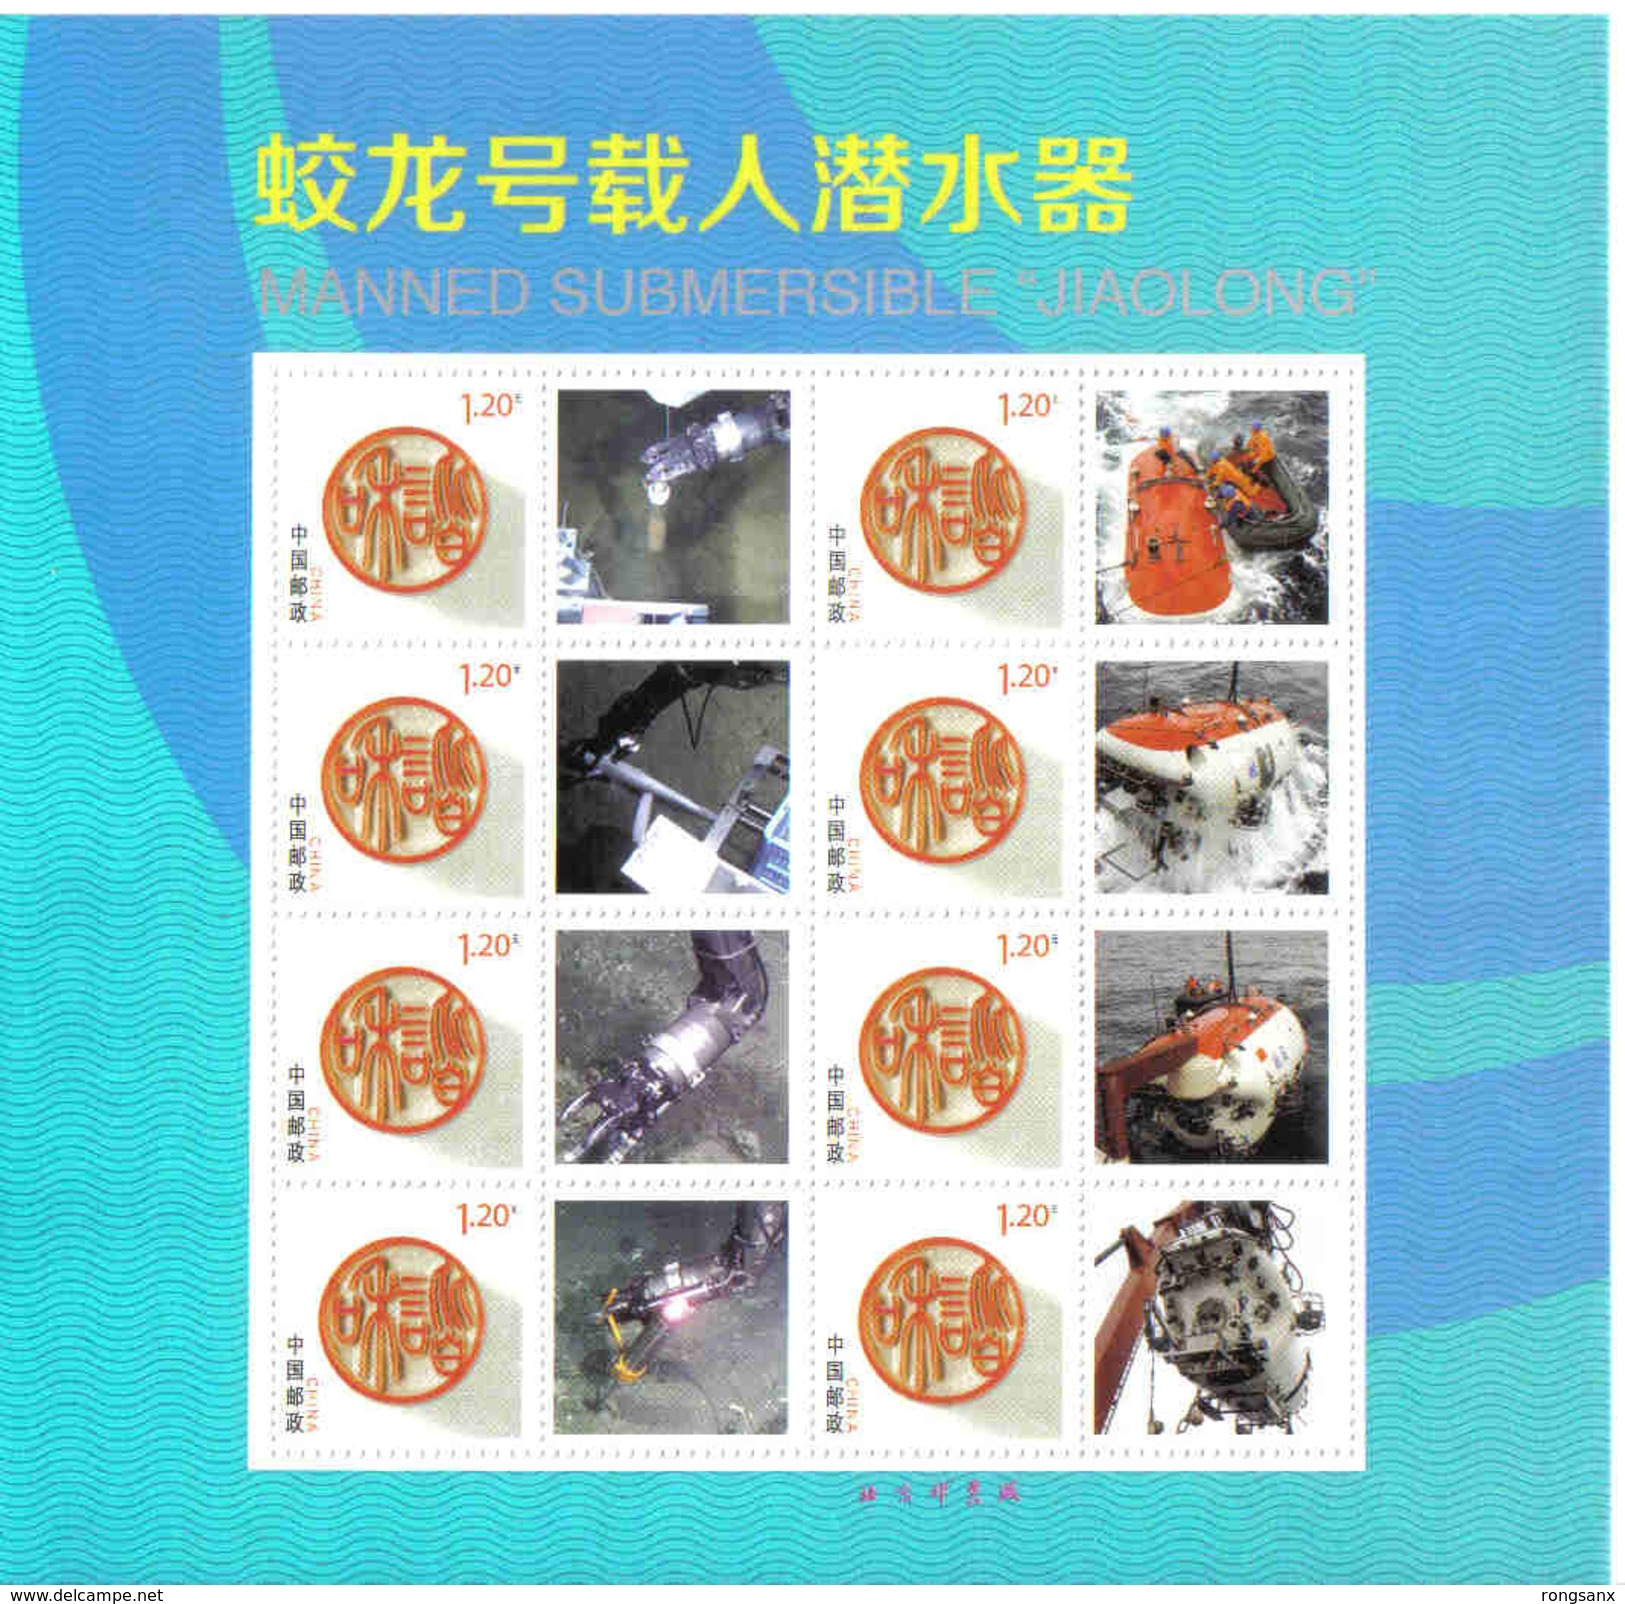 2015 CHINA SEA TRIAL OF THE Manned SUBMERSIBLE JIAOLONG Greeting SHEETLET - 1949 - ... People's Republic